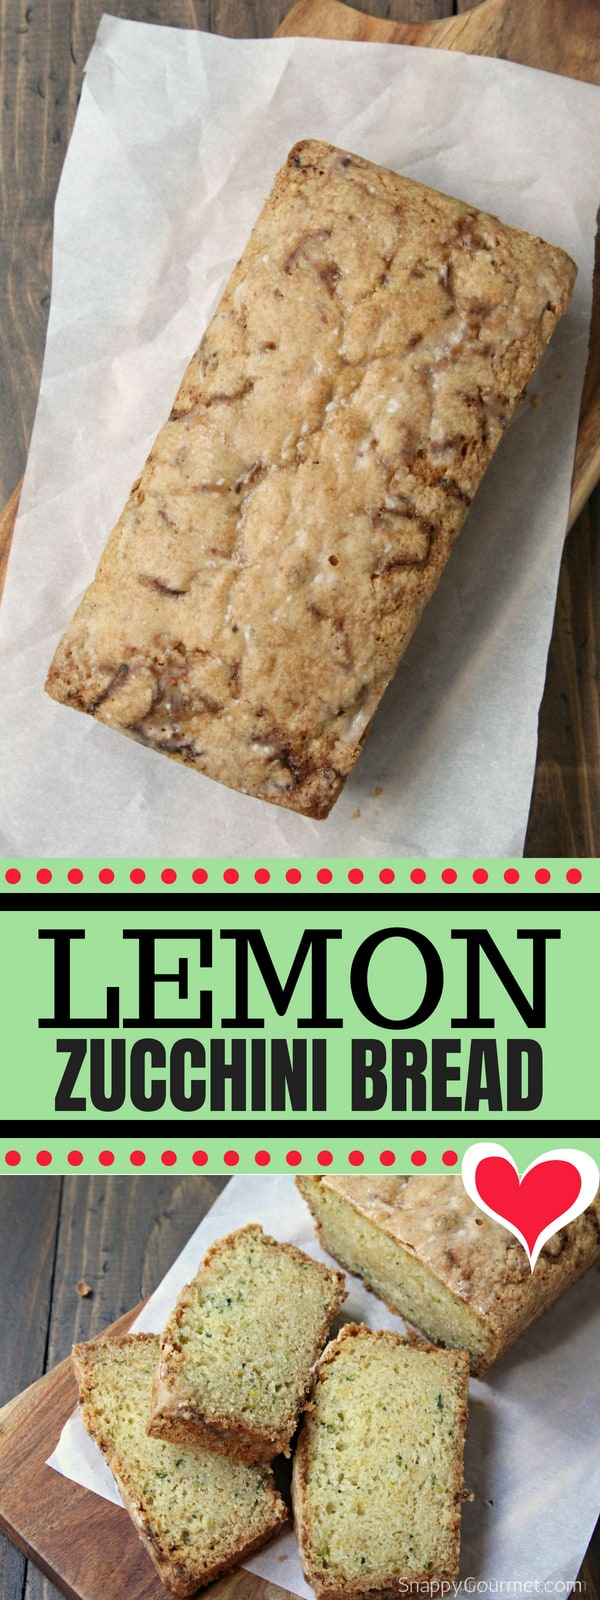 Lemon Zucchini Bread, how to make zucchini bread from scratch with fresh lemon. This quick bread recipeis the BEST way to use up some fresh zucchini! #Lemon #Zucchini #Bread #SnappyGourmet #Recipe #Dessert #Snack #ZucchiniBread #summer